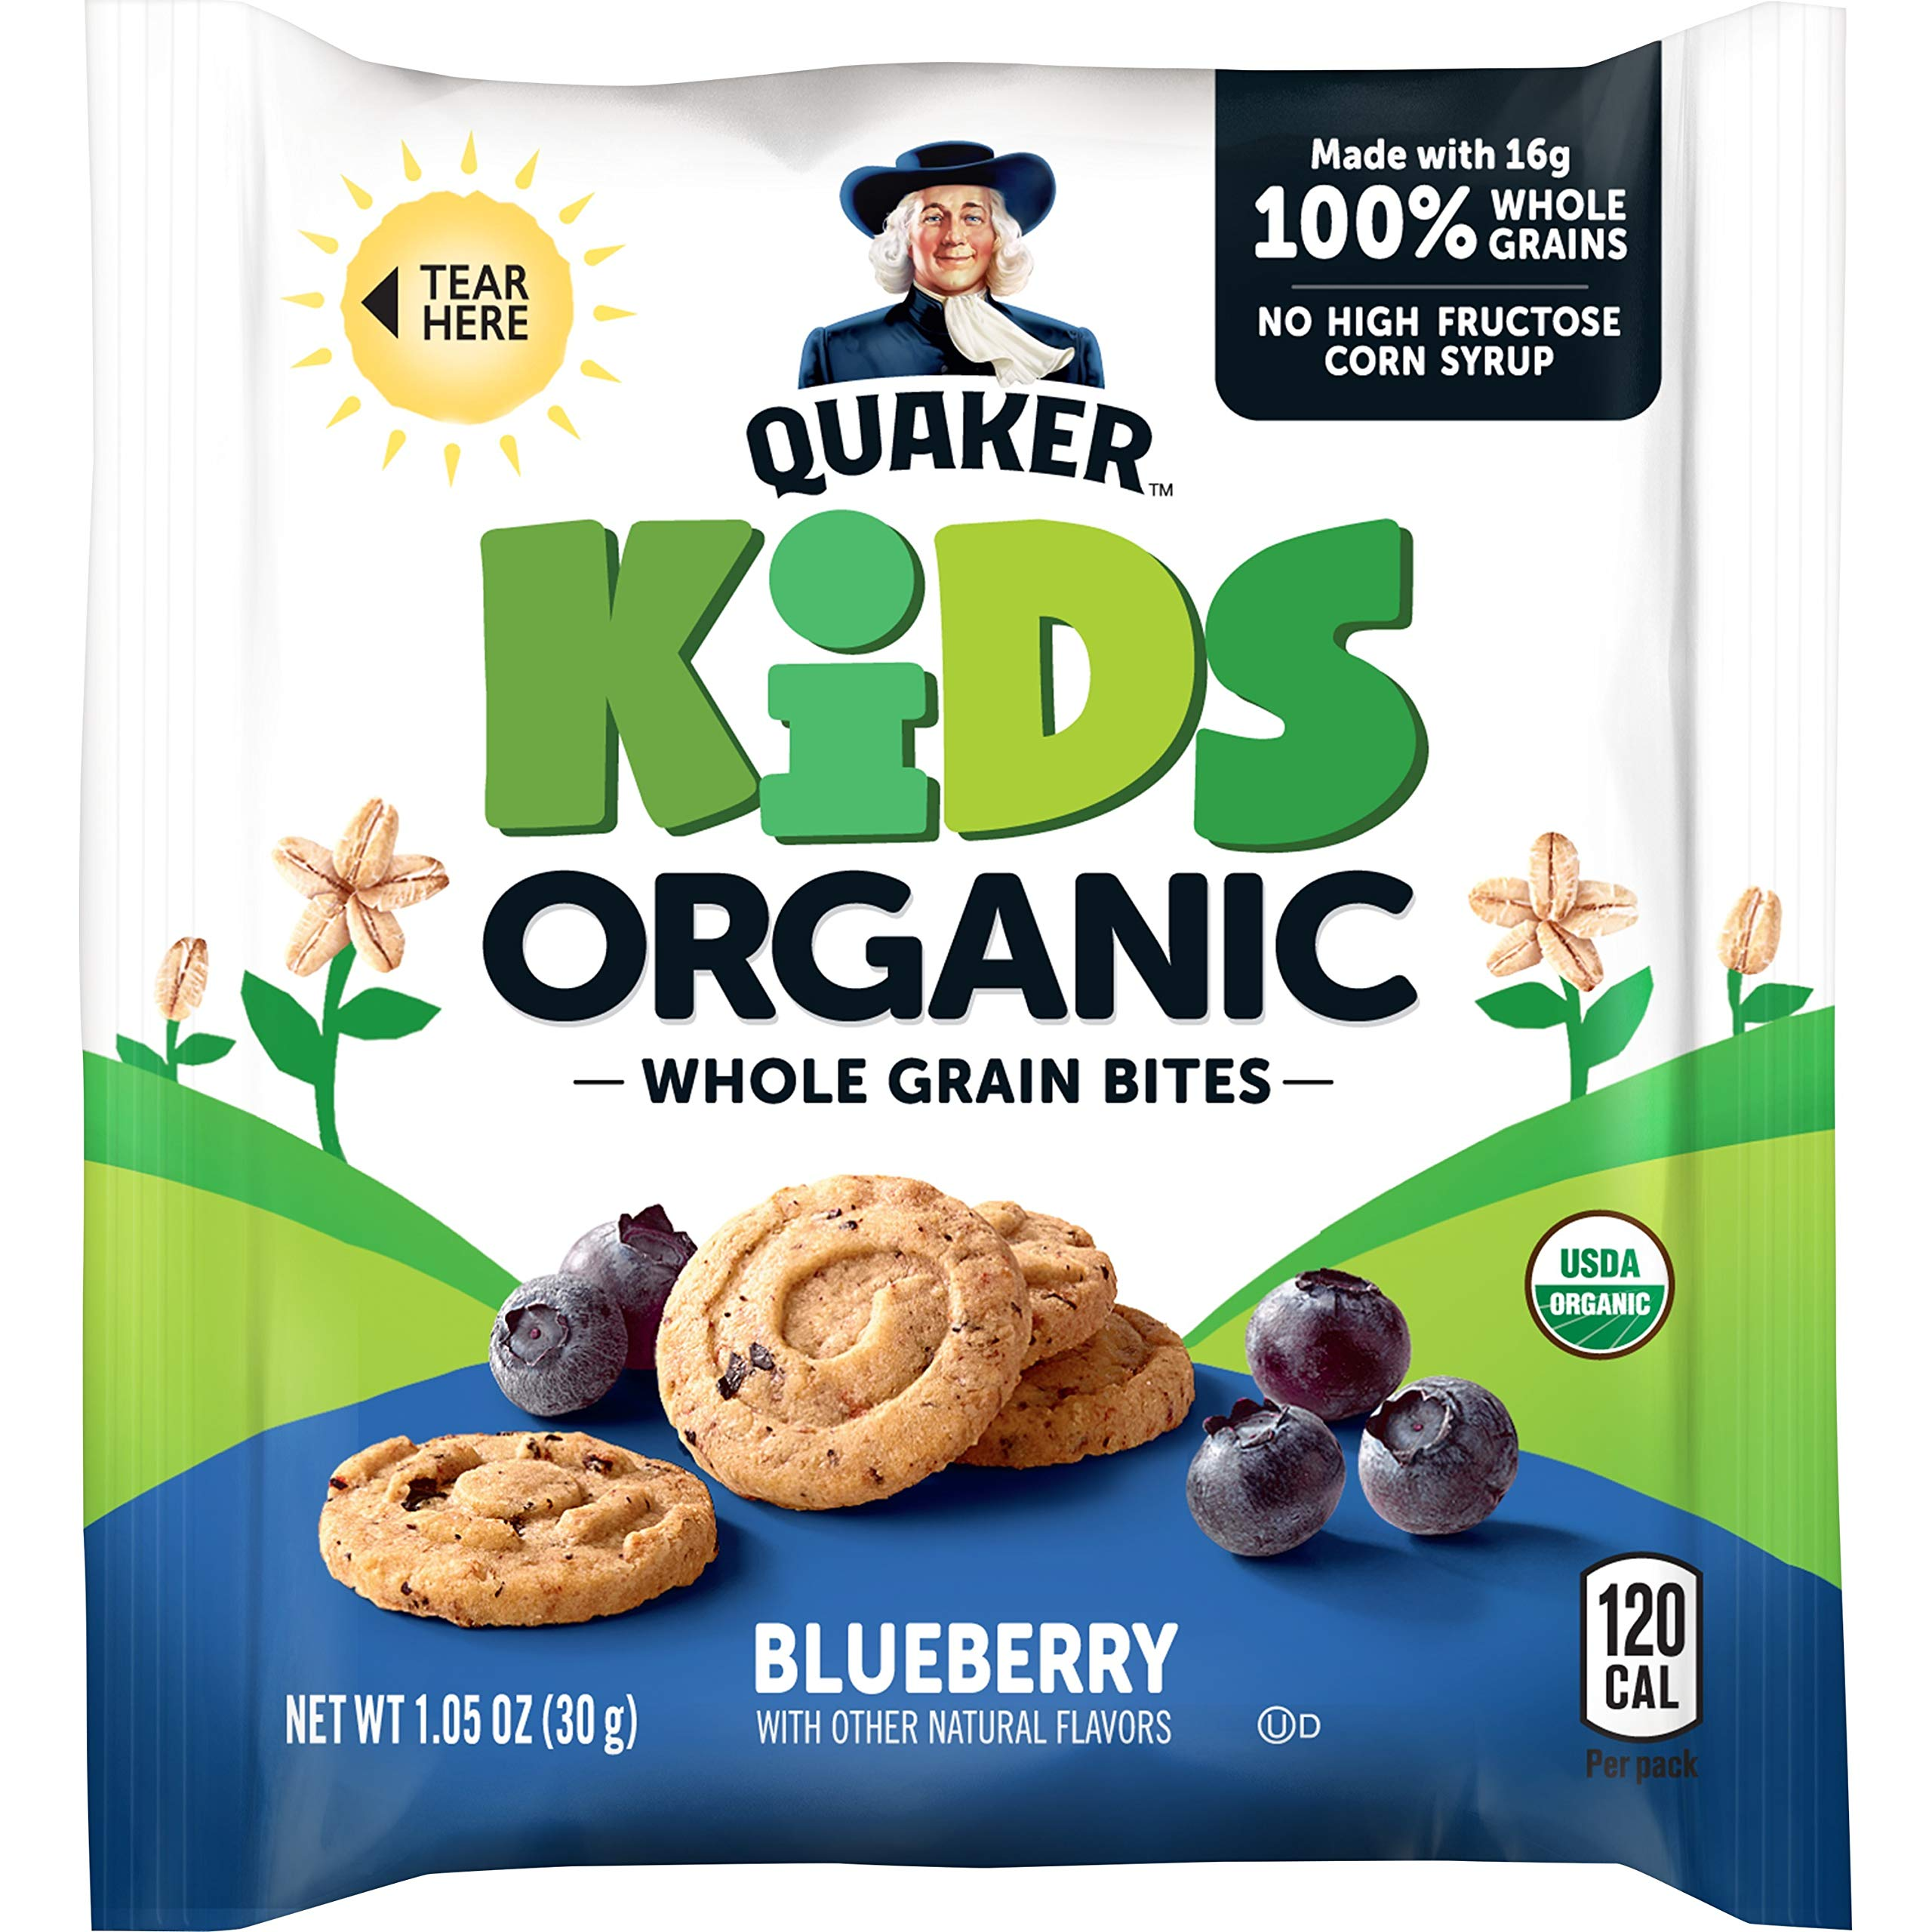 Quaker Kids Organic Whole Grain Bites